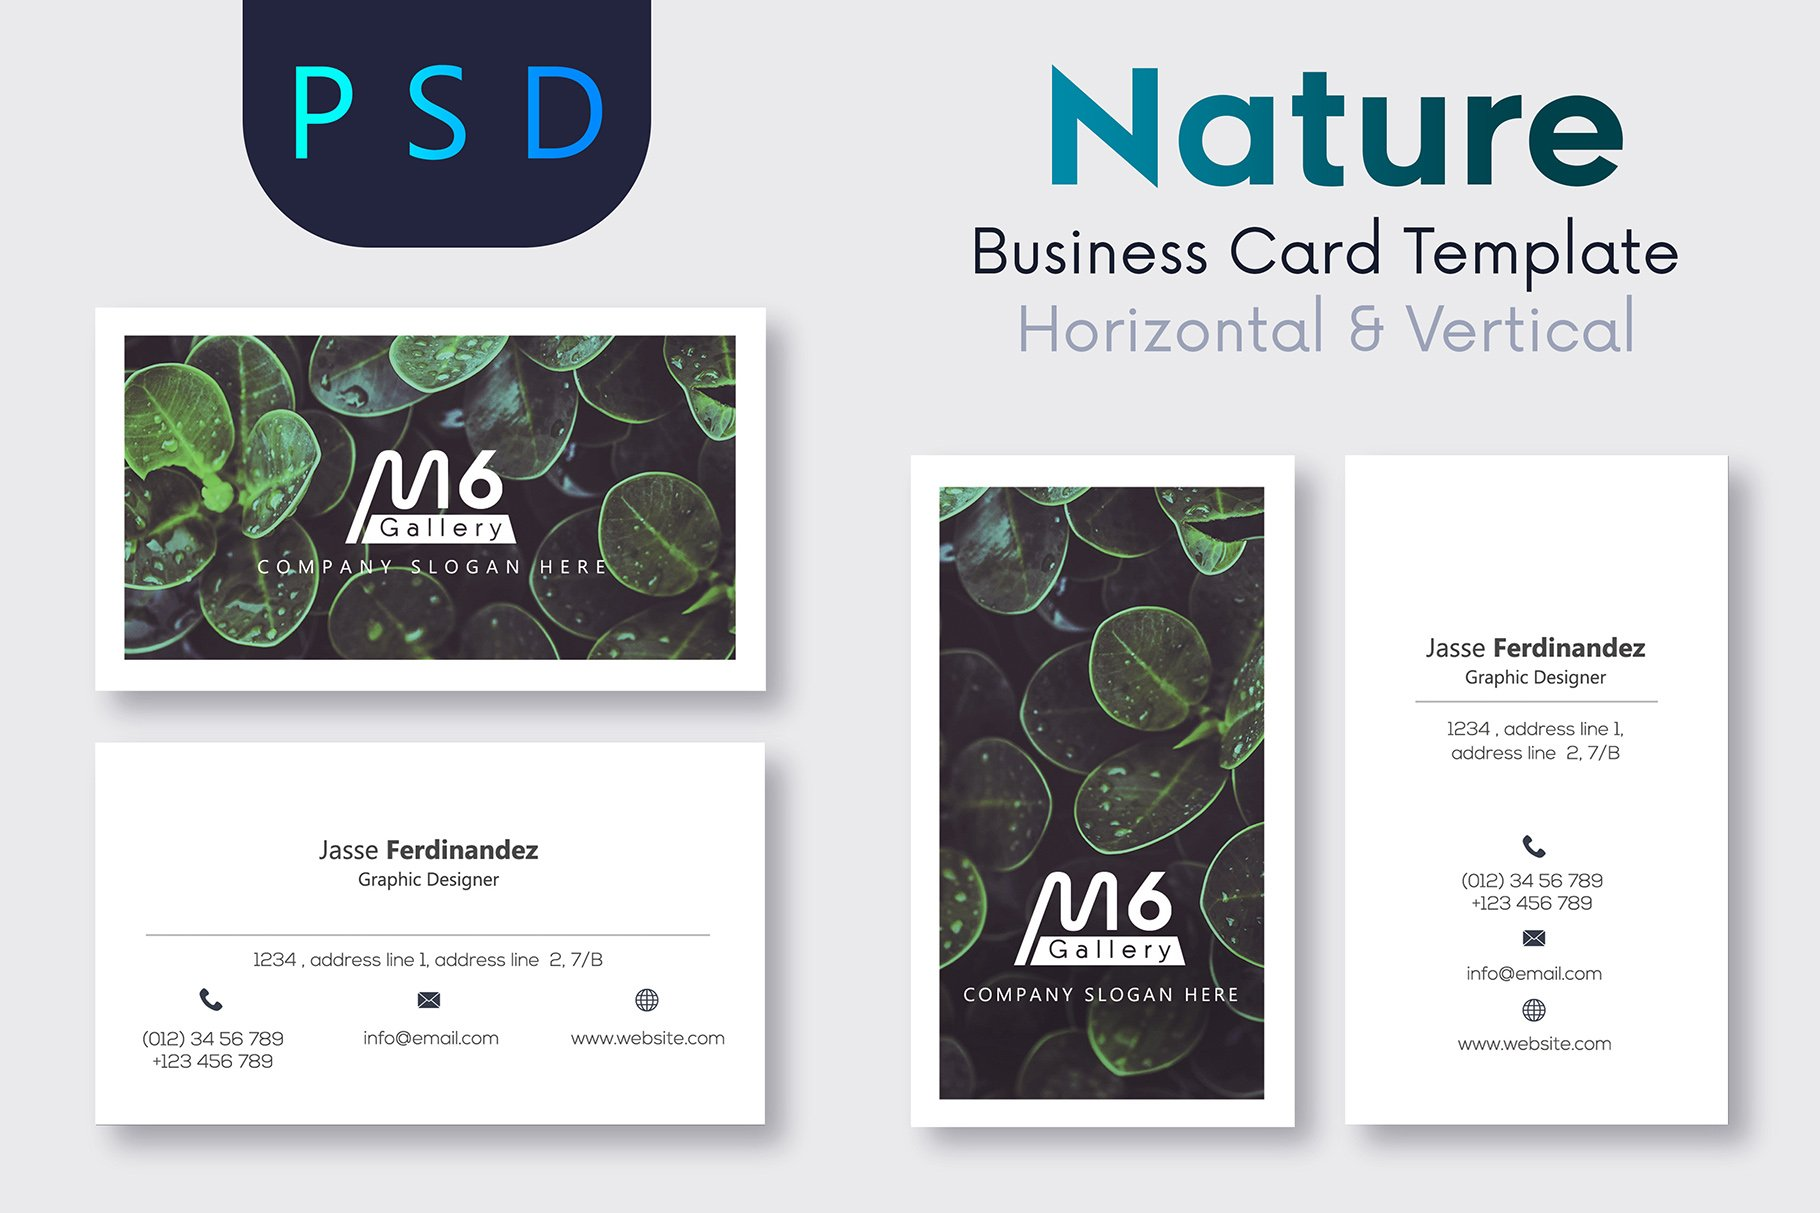 Nature business card template s40 business card templates nature business card template s40 business card templates creative market reheart Images